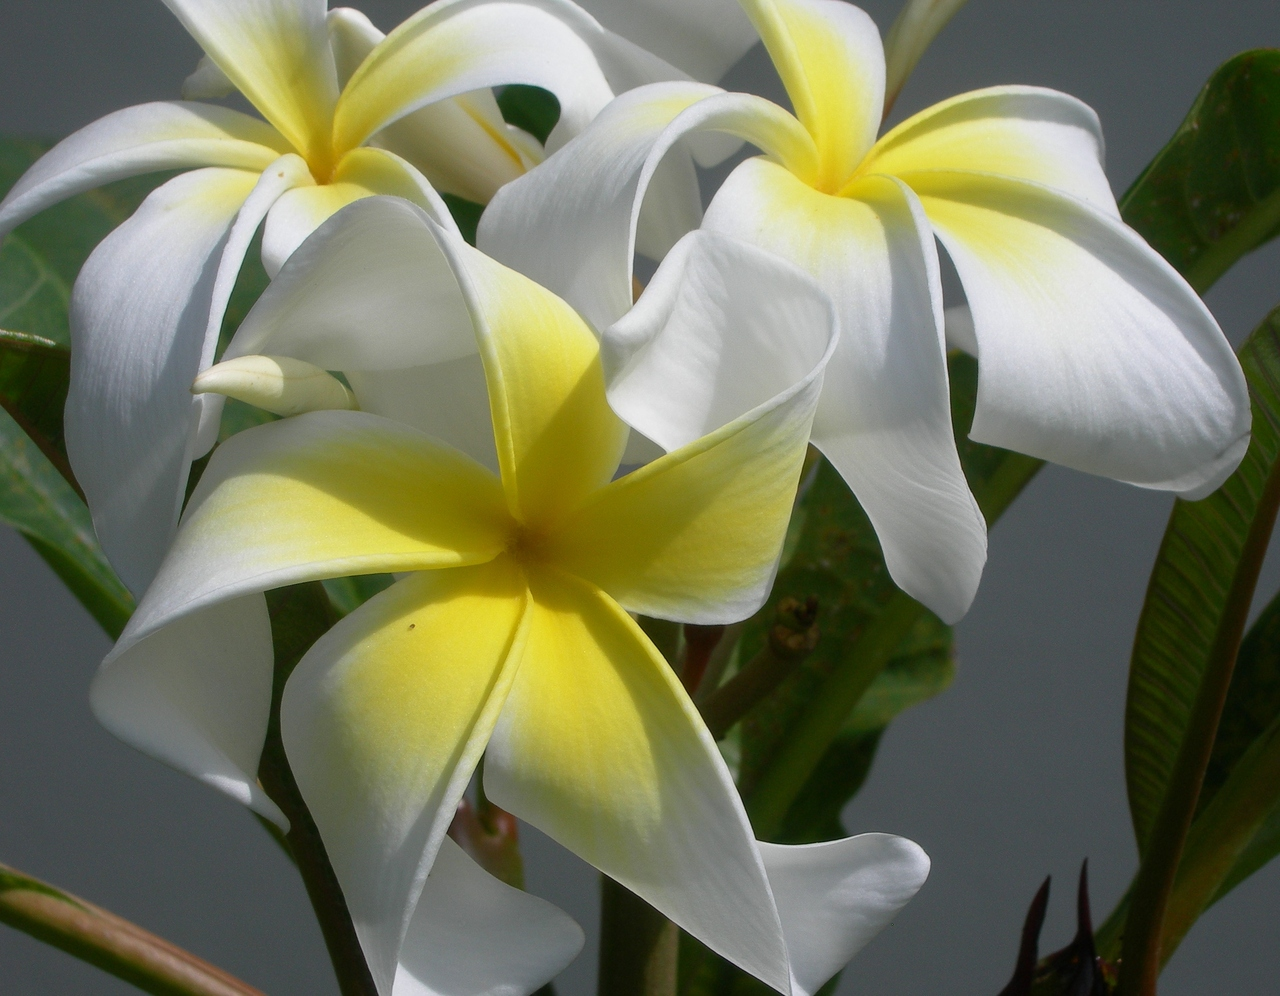 Ammaron's Curly White (rooted) plumeria